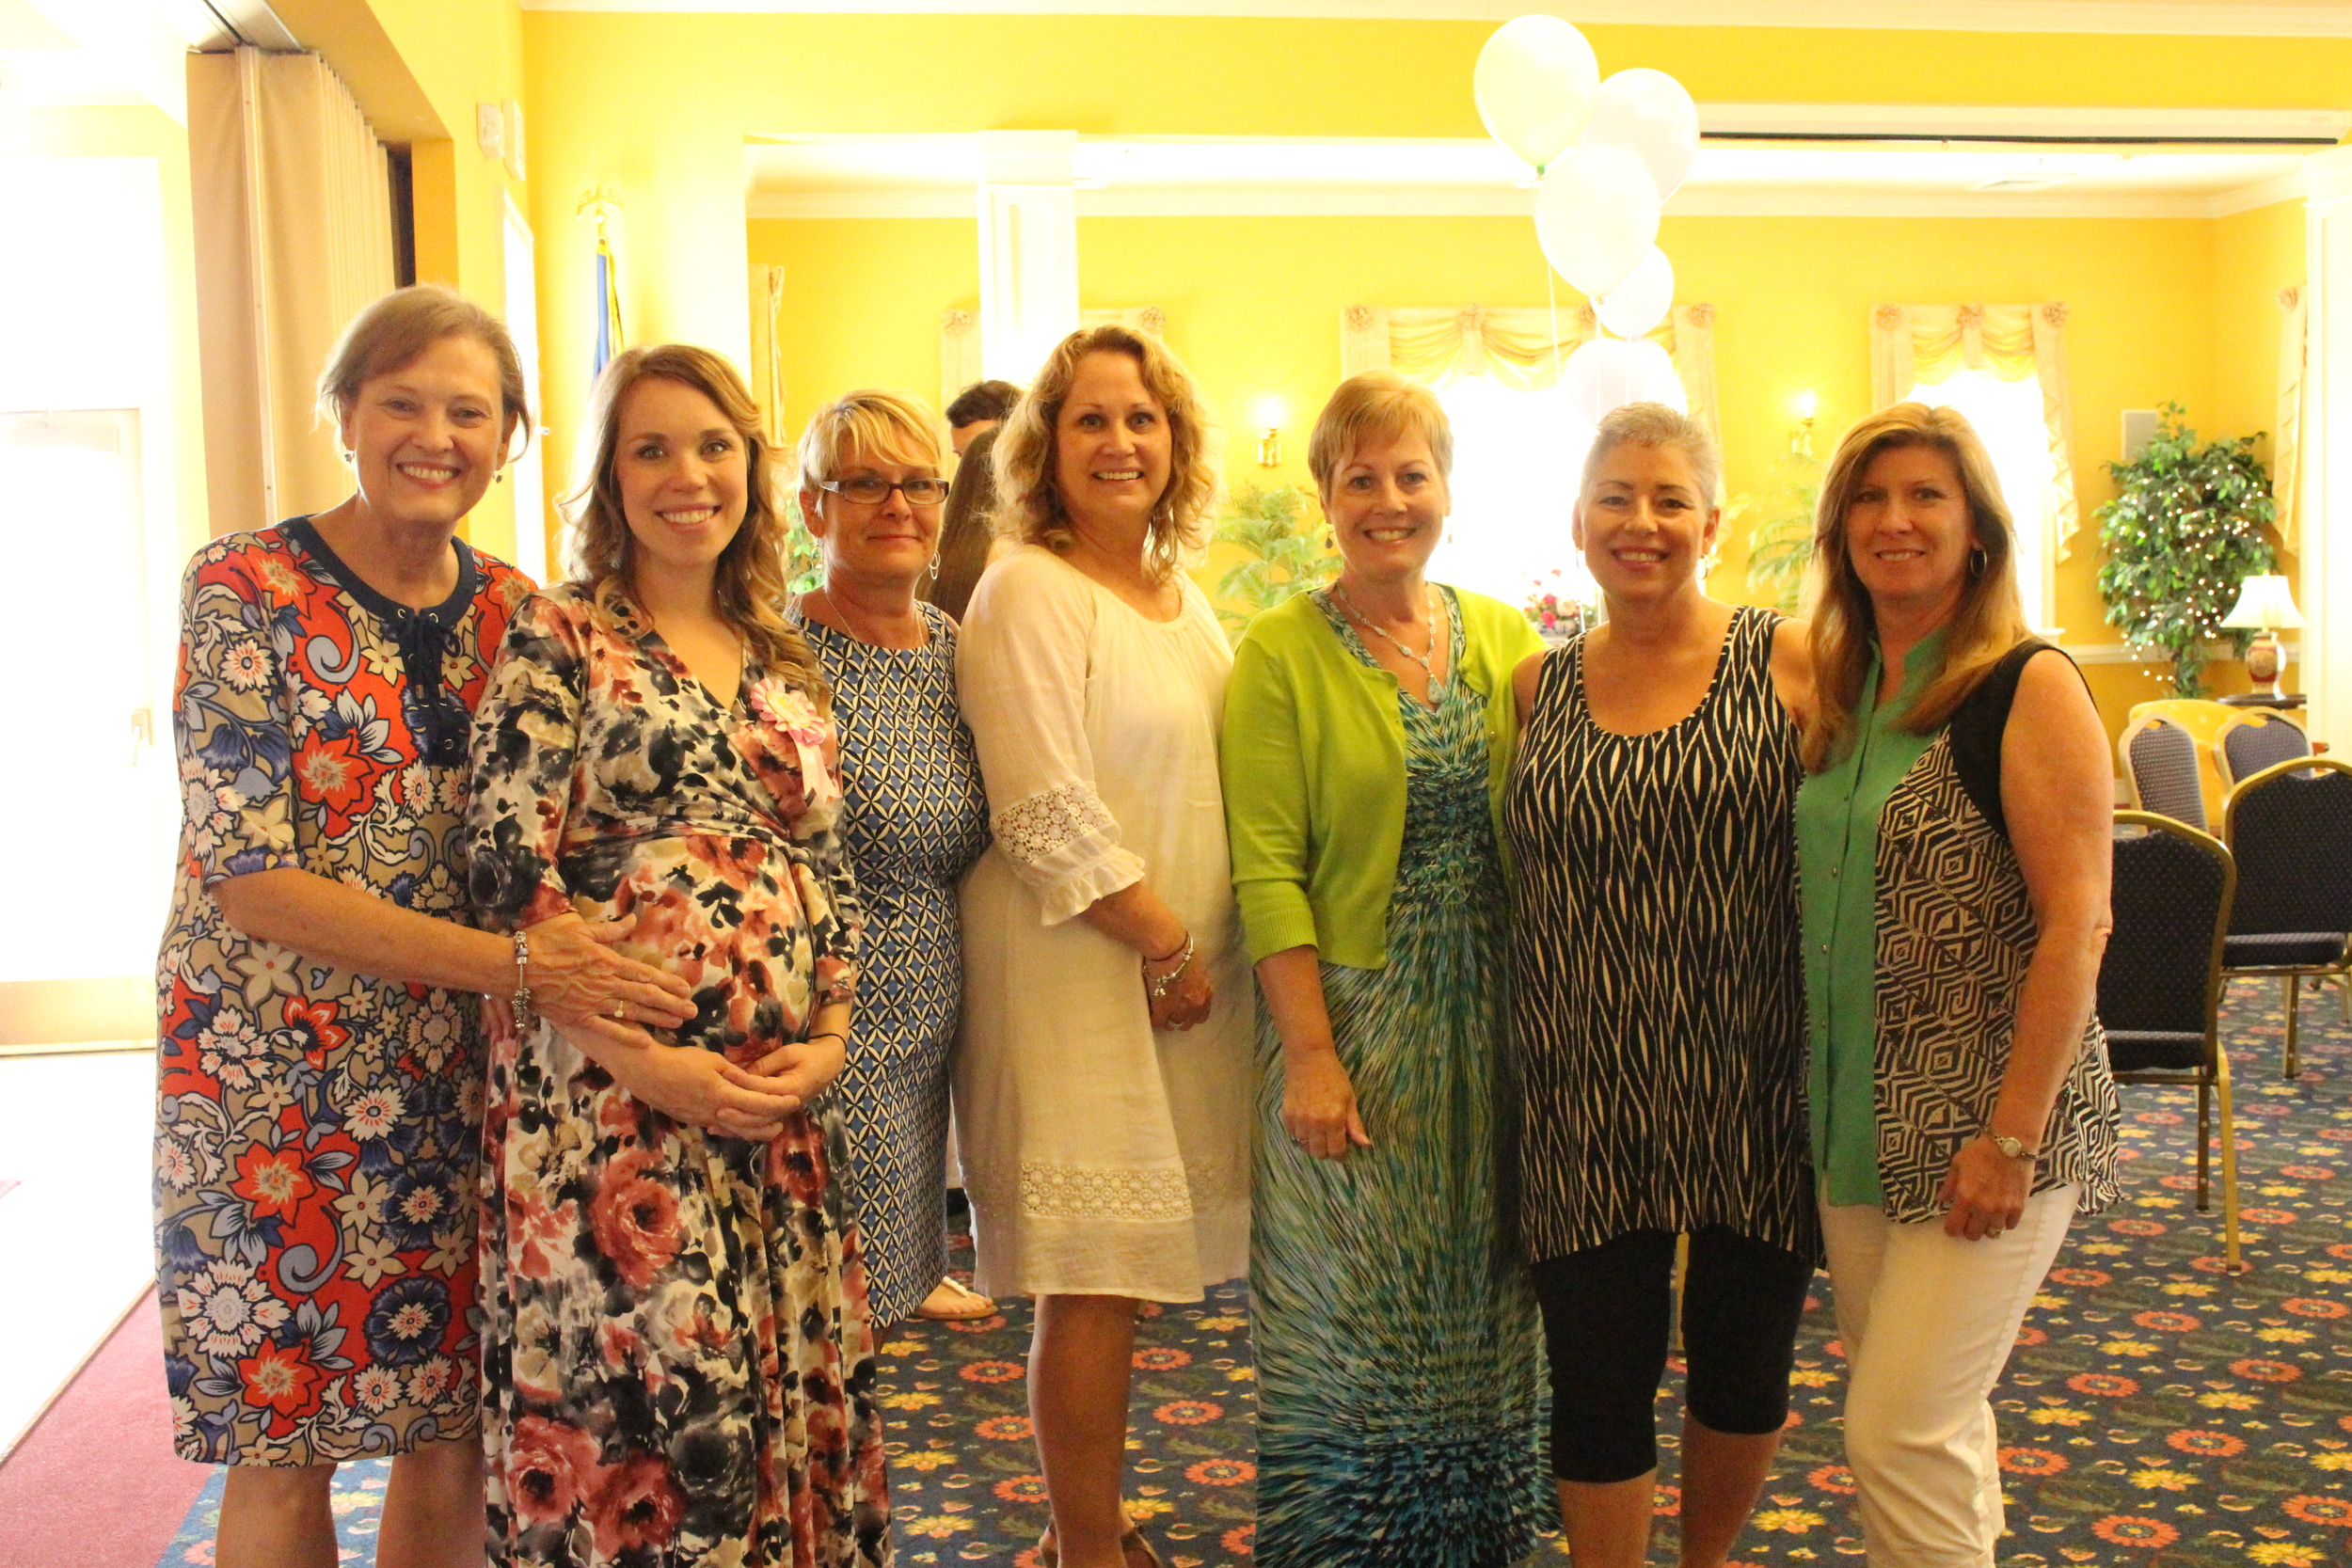 Me and the moms and aunts. There are a lot of clashing patterns in this shot. Haha! We need to work on our coordinating outfits!